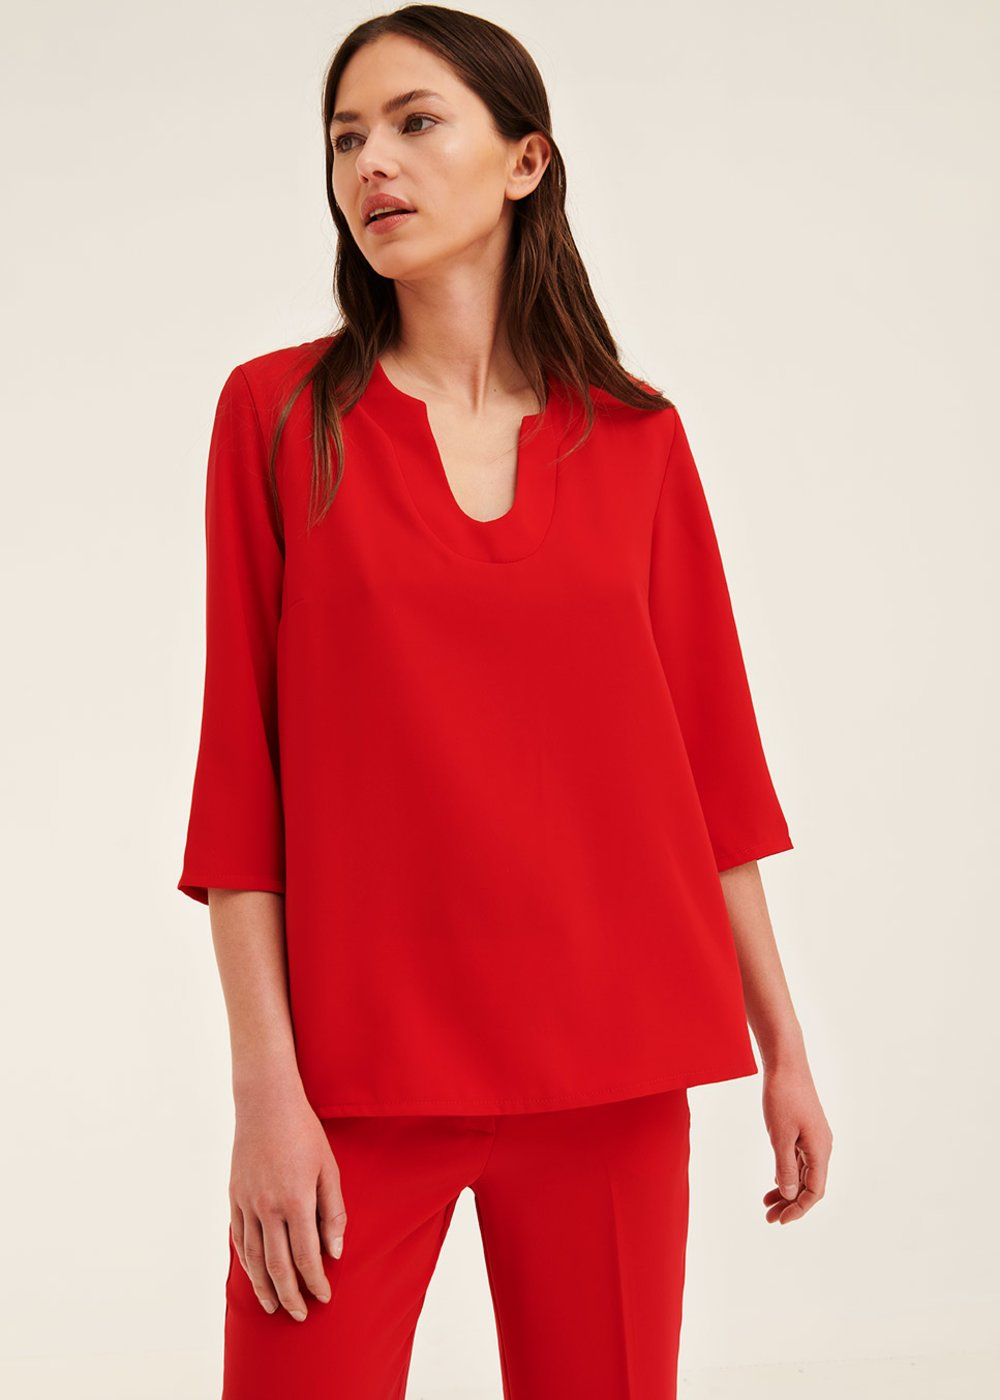 Sara cherry-red blouse - Cherry Red - Woman